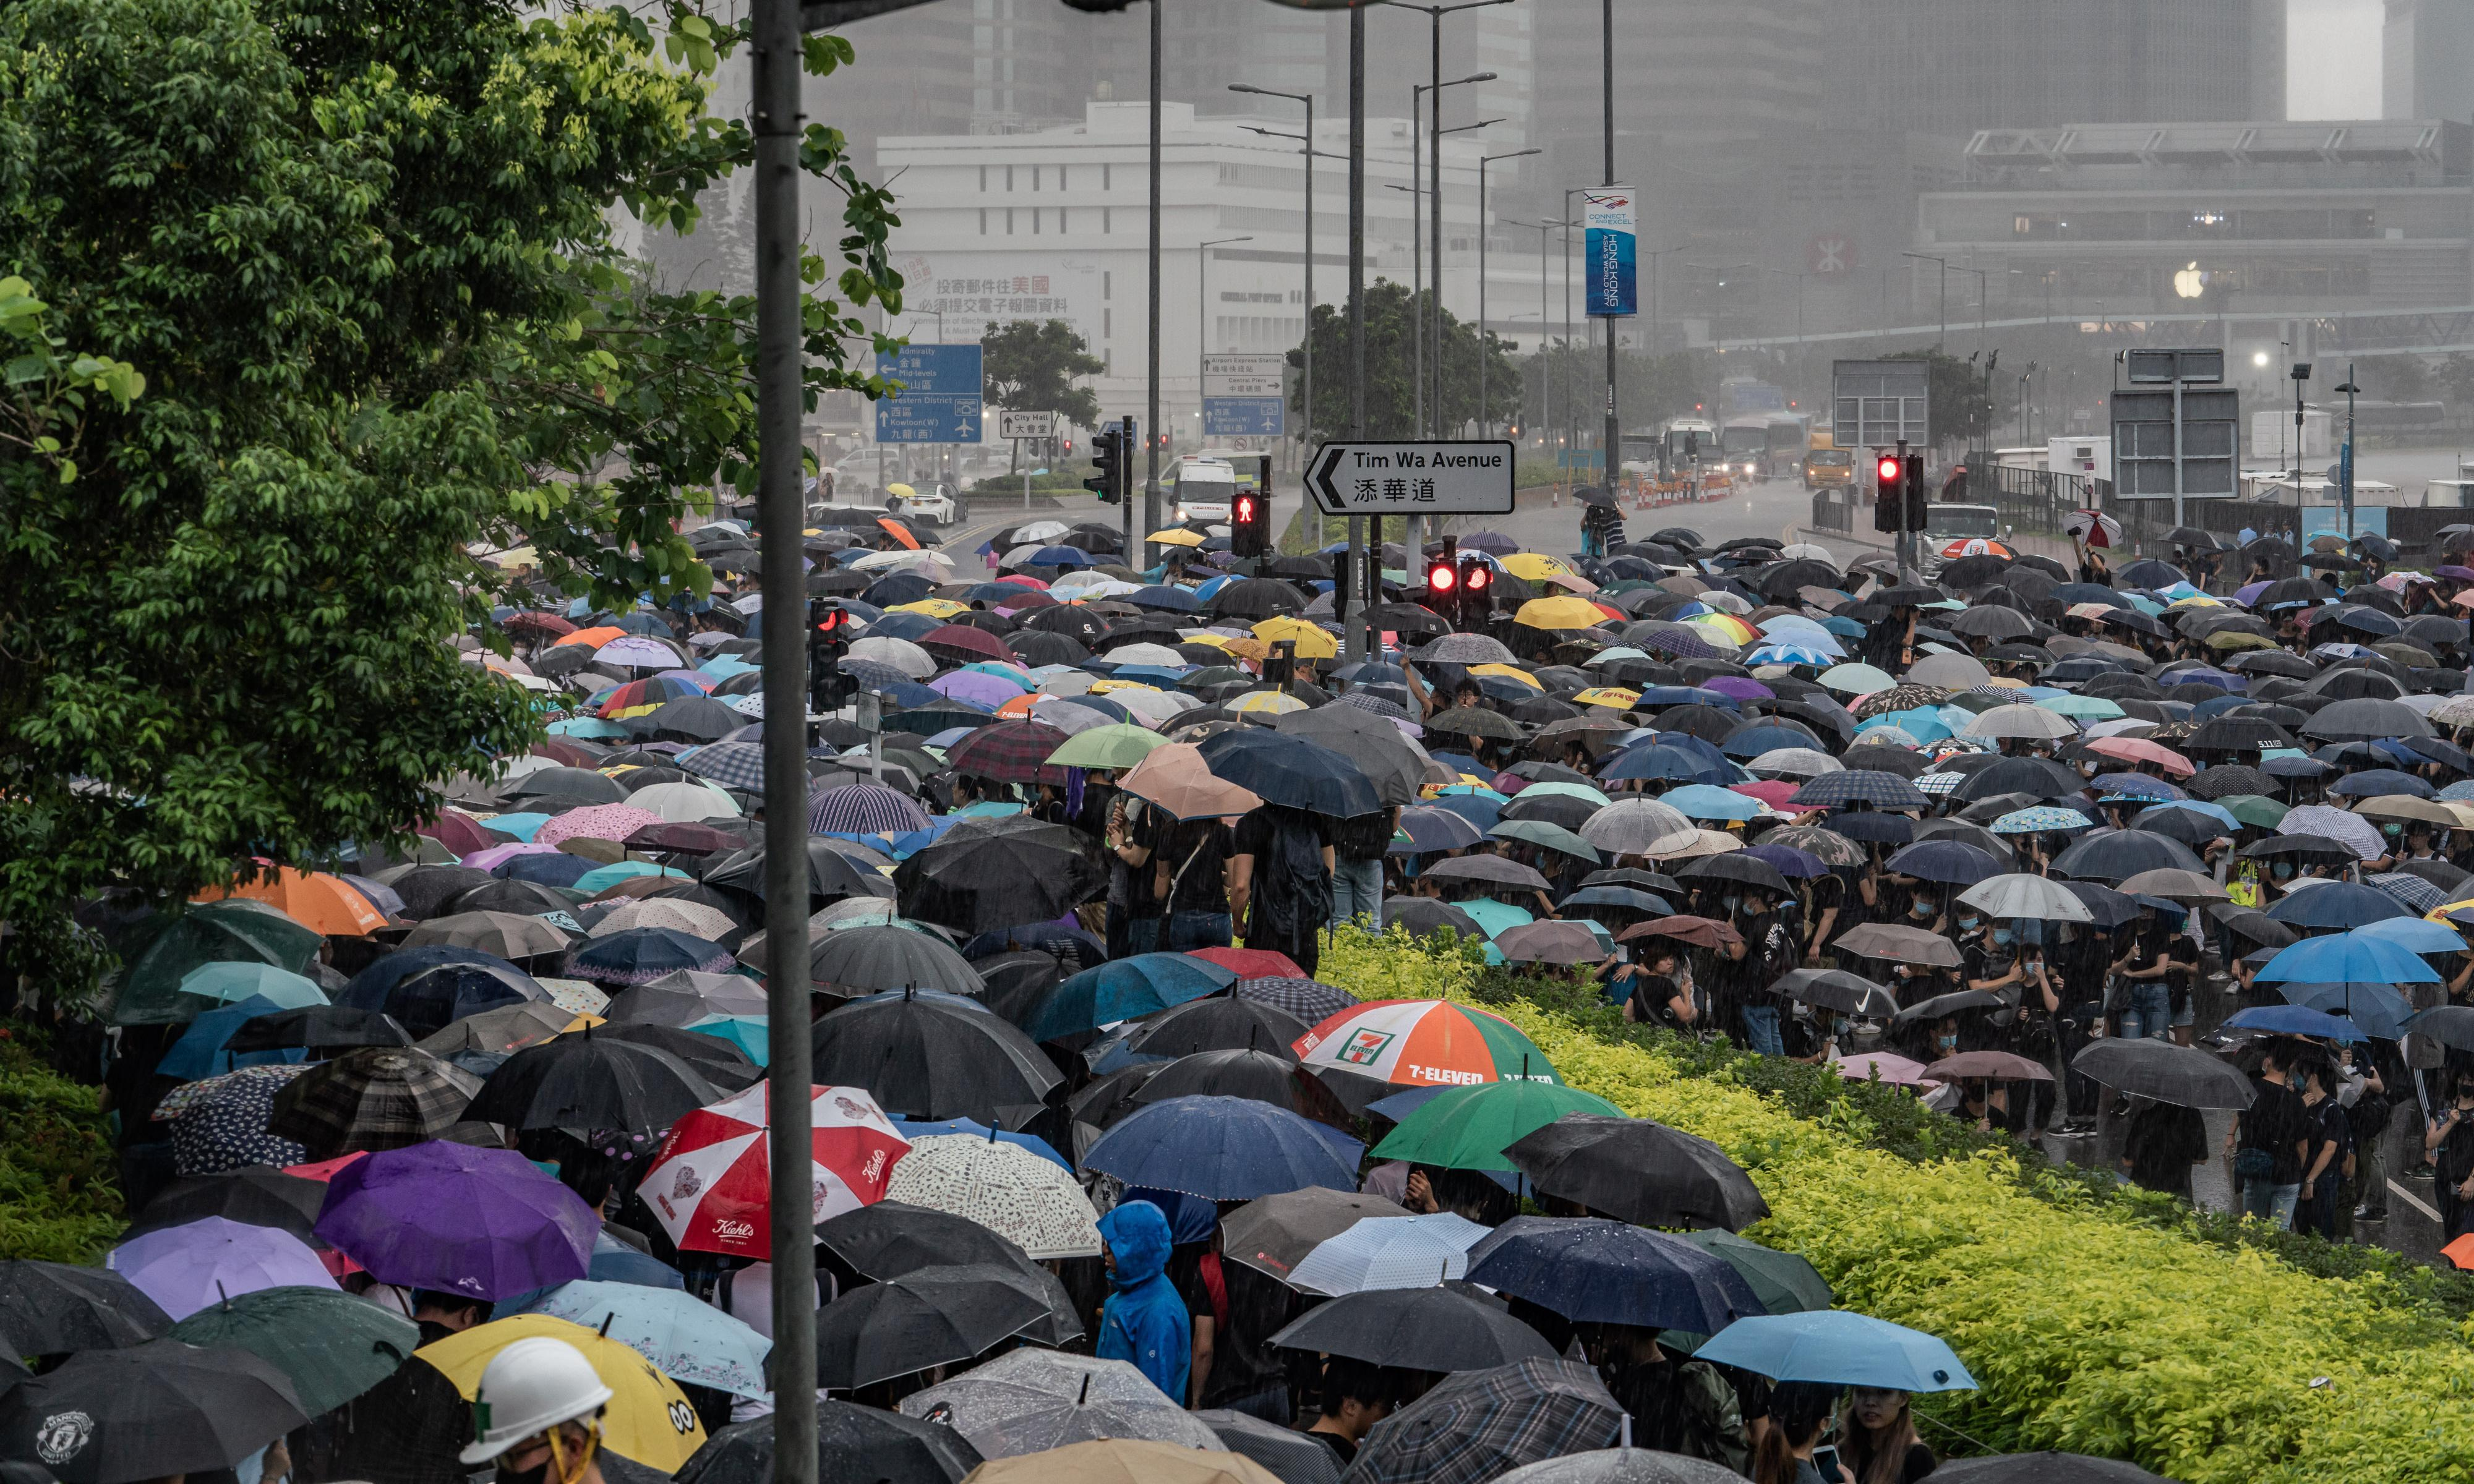 The Guardian view on Hong Kong's crisis: the people have spoken